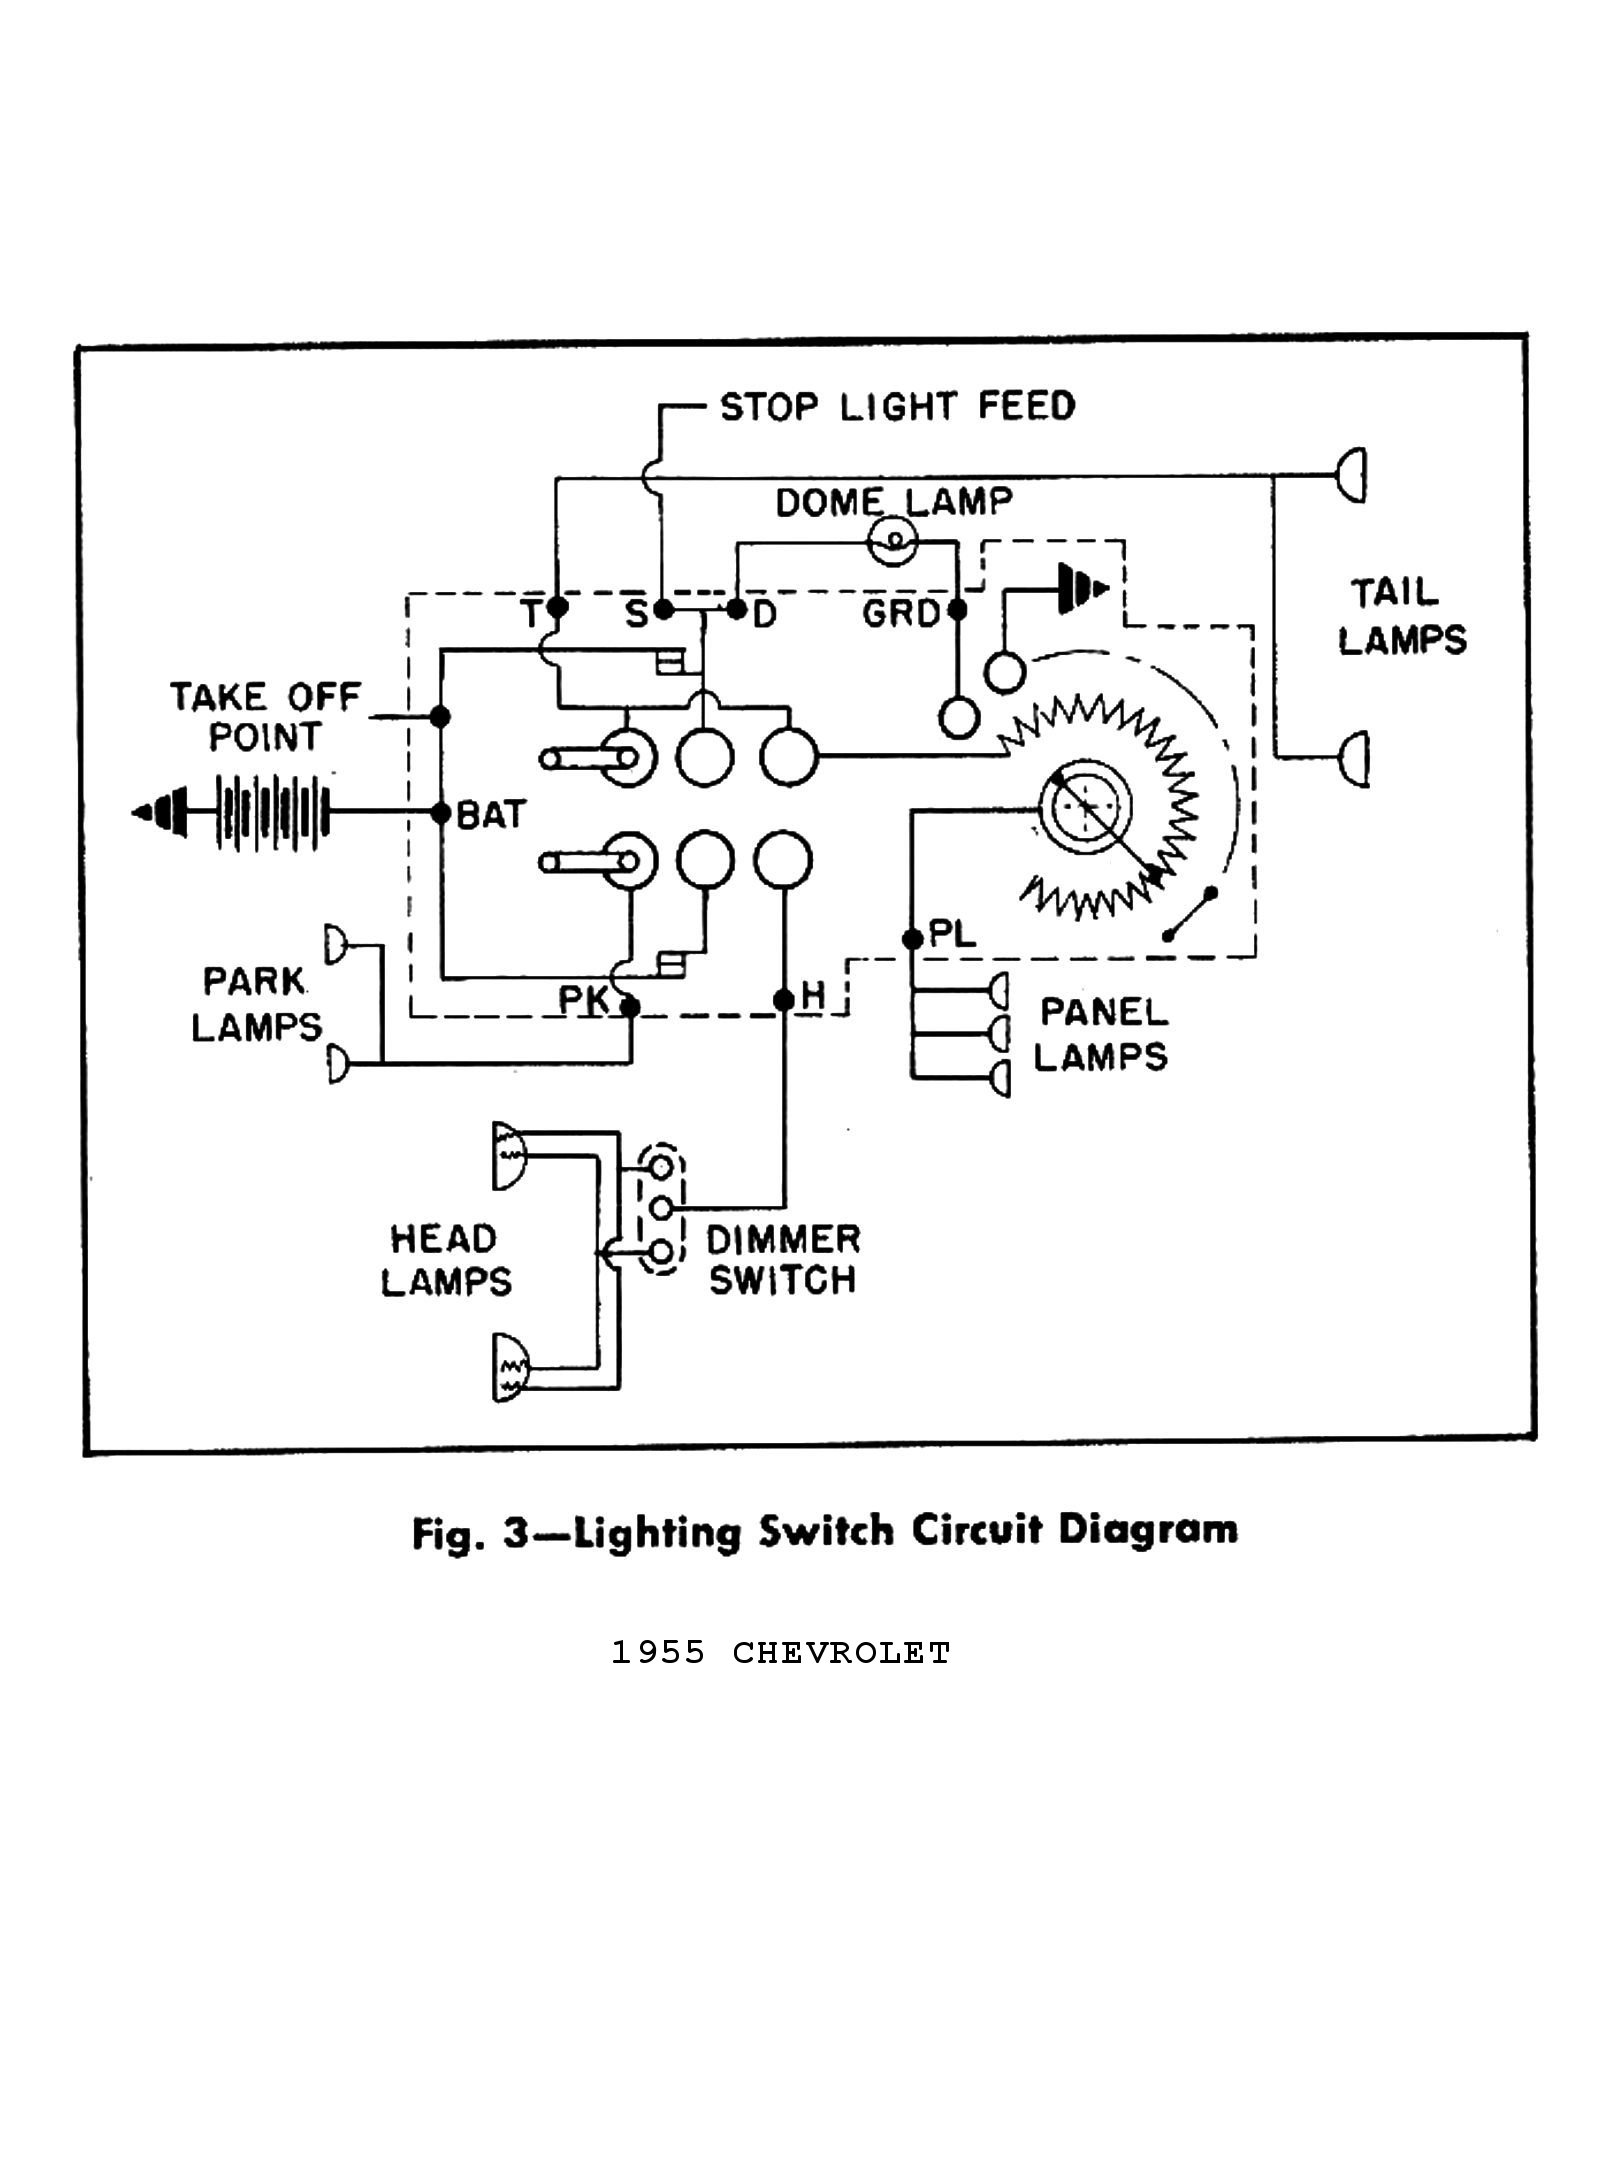 hight resolution of 1955 lighting switch circuit